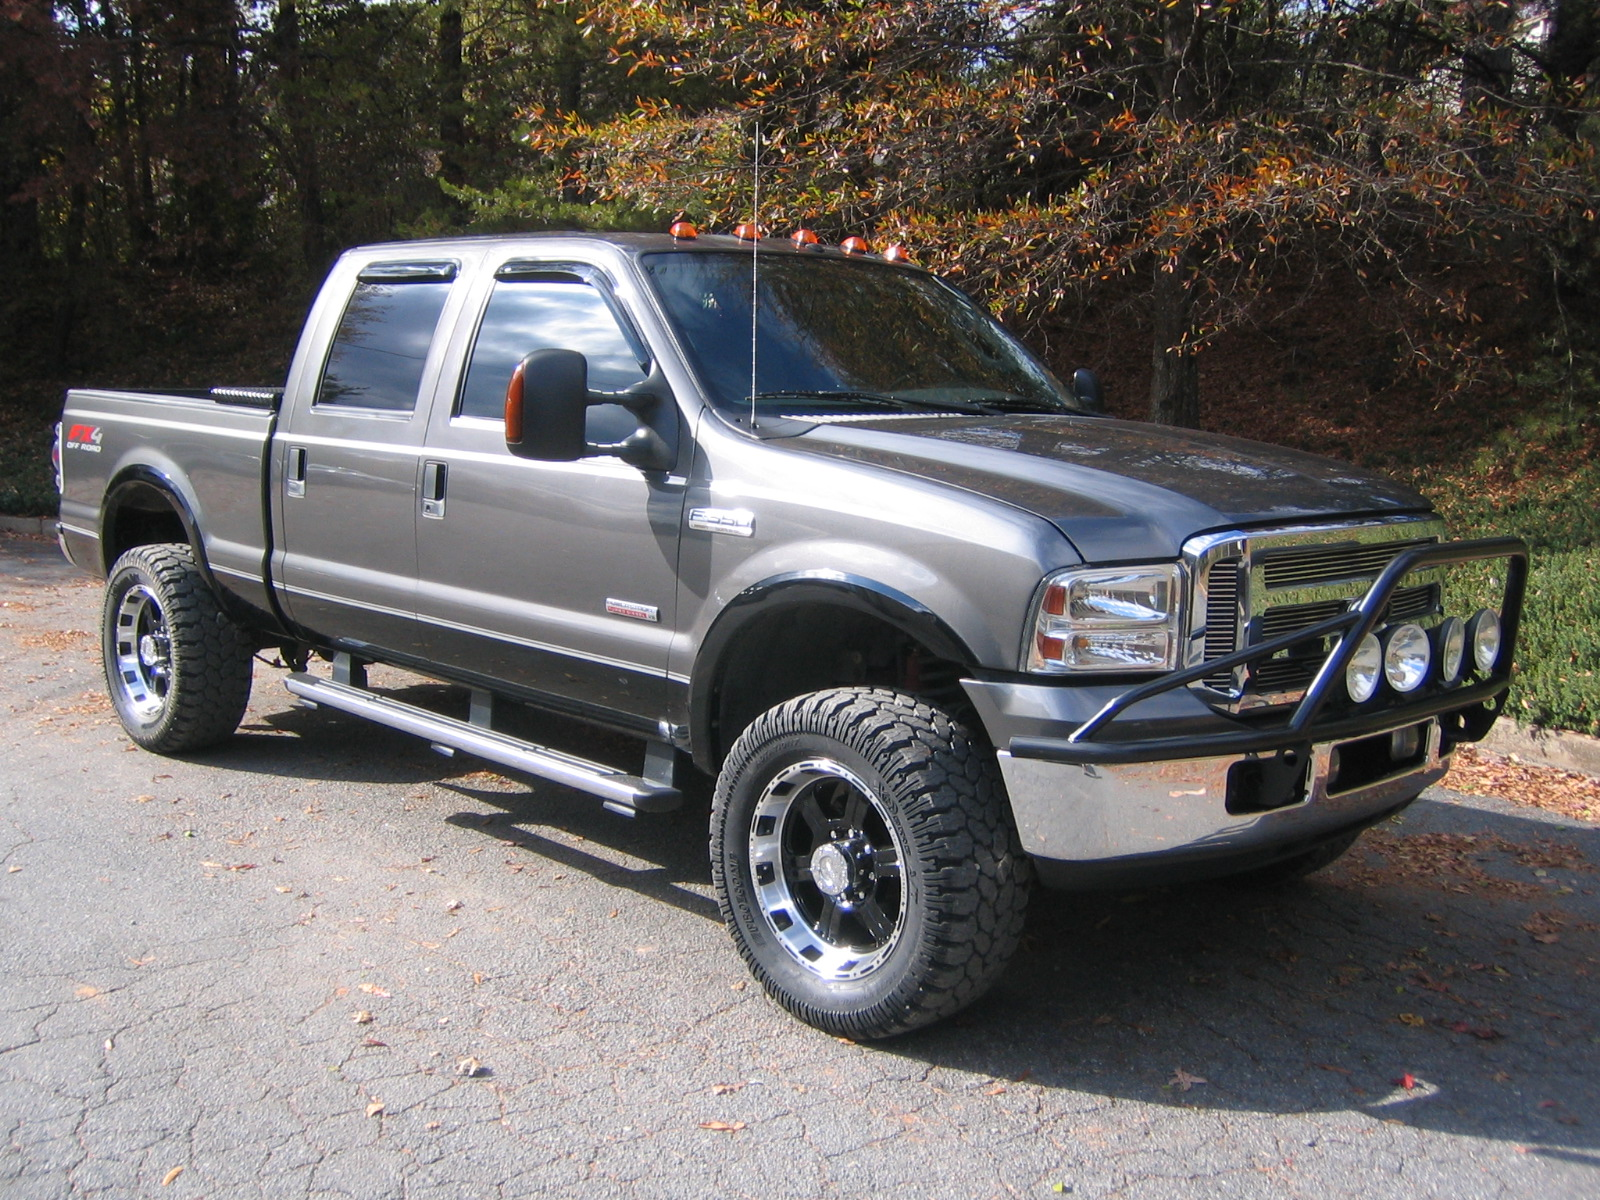 2005 Ford F-350 Super Duty #3